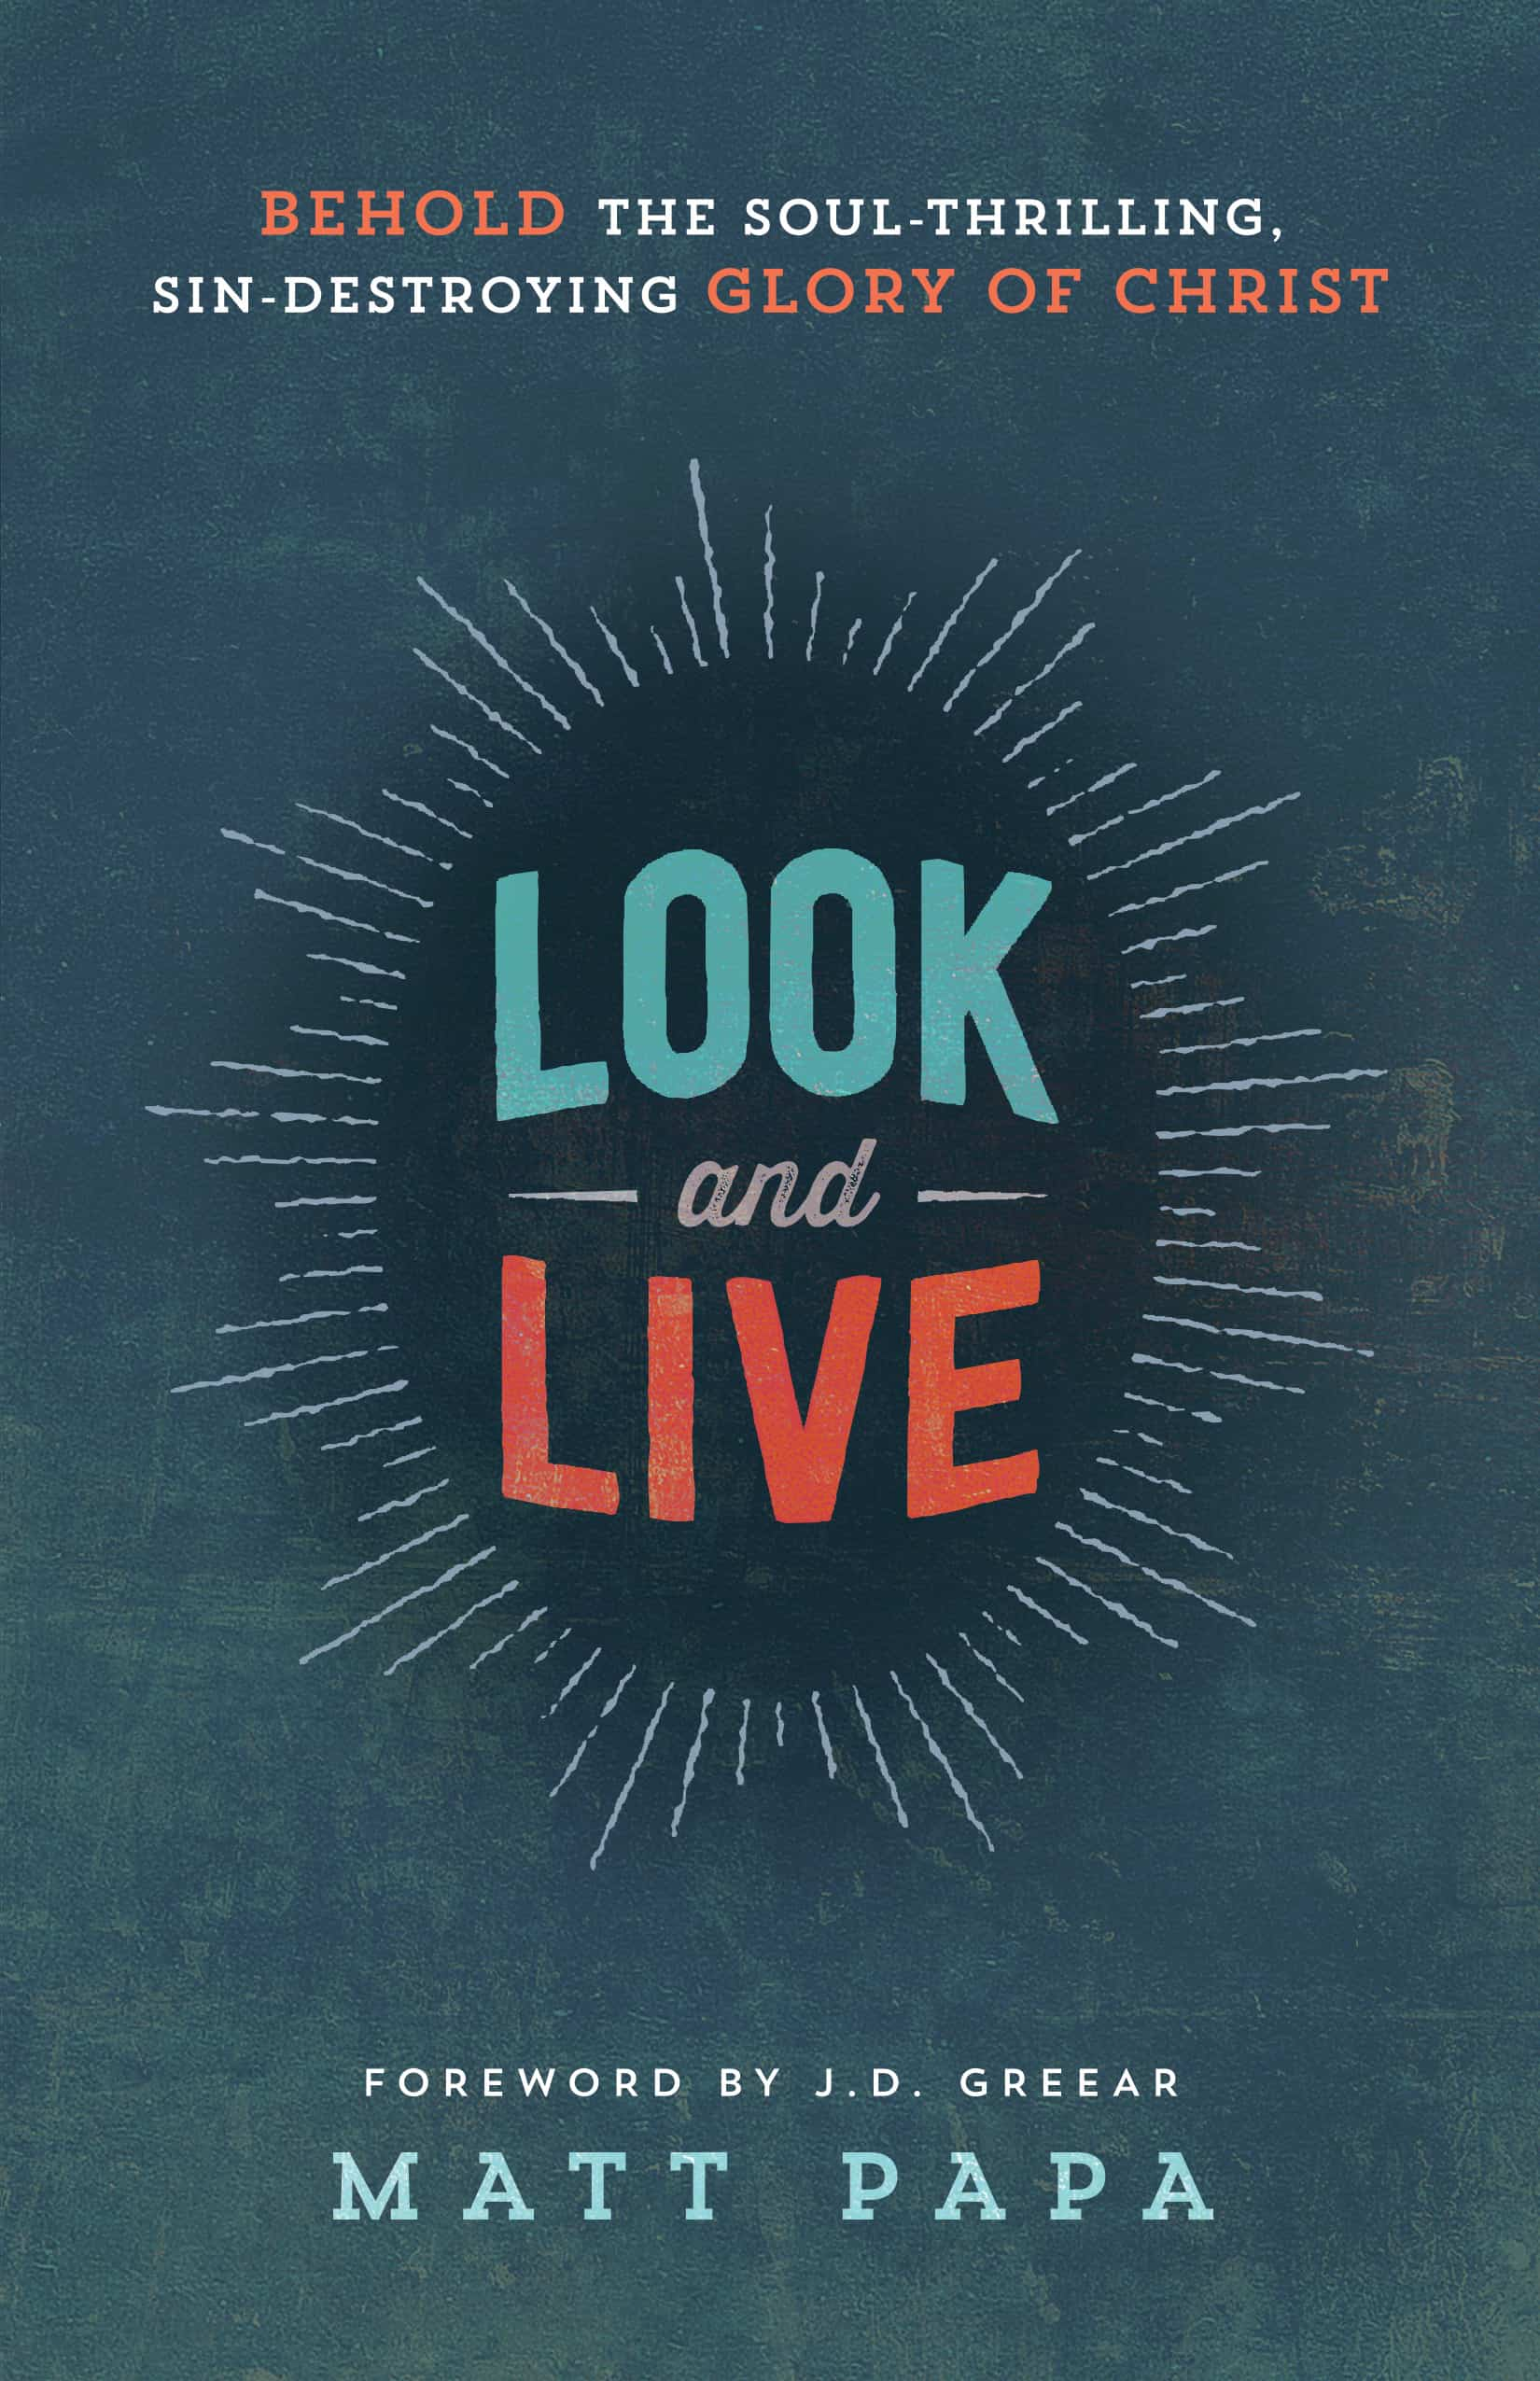 Look and Live Behold The Soul-Thrilling, Sin-Destroying Glory of Christ by Matt Papa